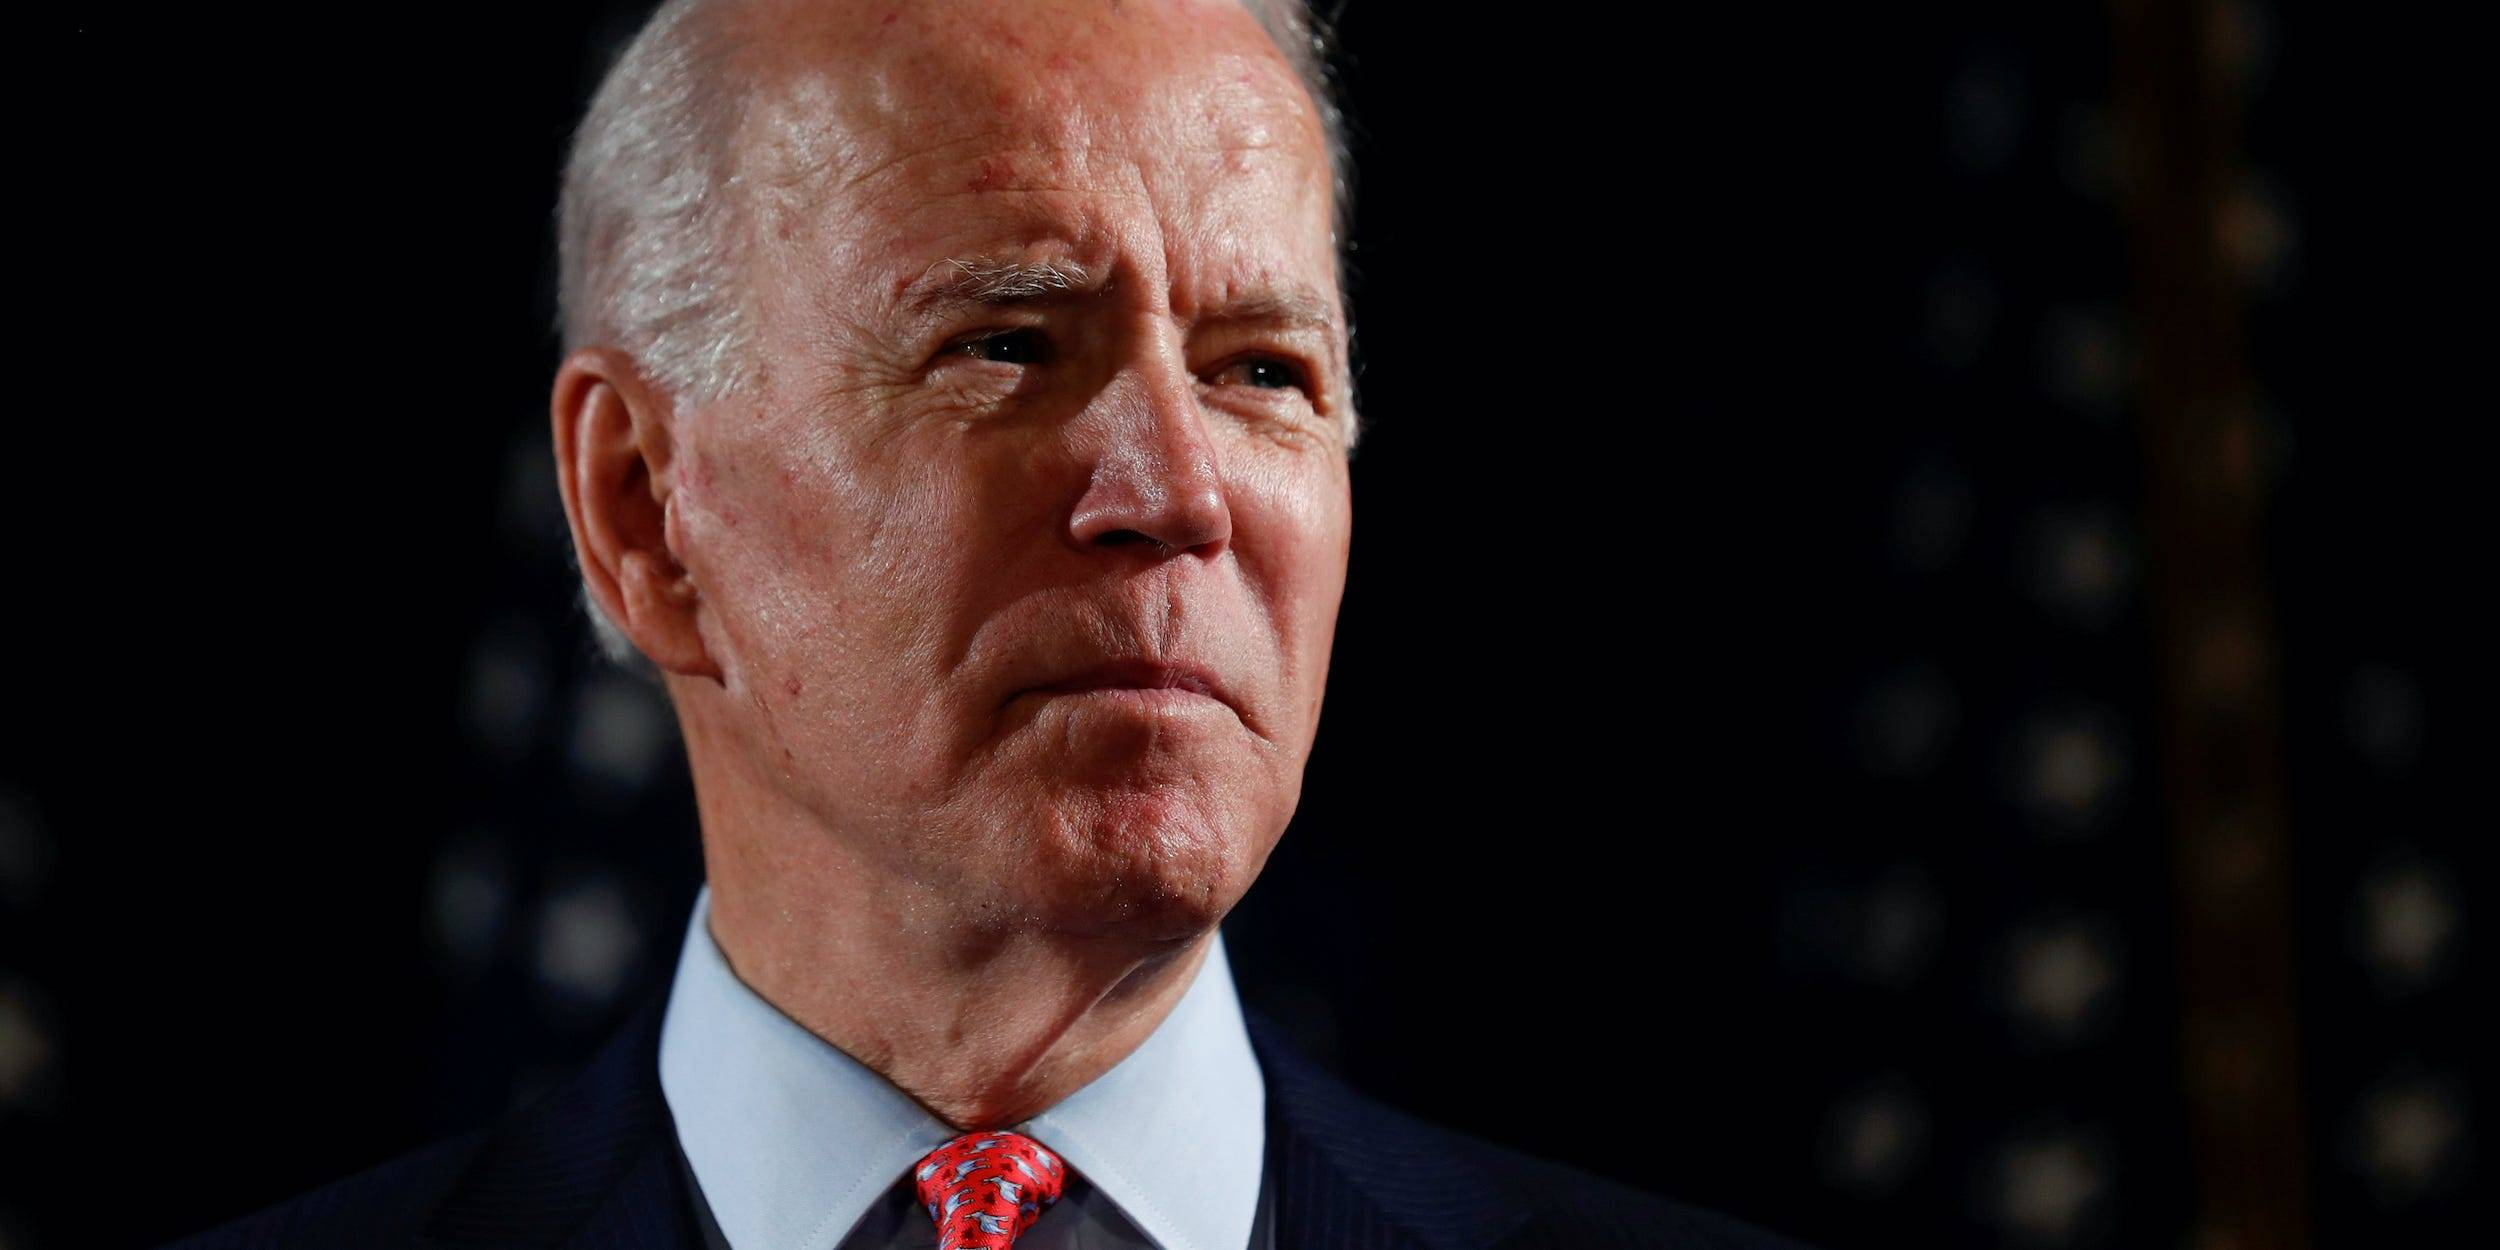 """, The Daily Beast, """"Twitter Loophole Allows Biden Rumors To Spread Like Wildfire"""", The Politicus"""